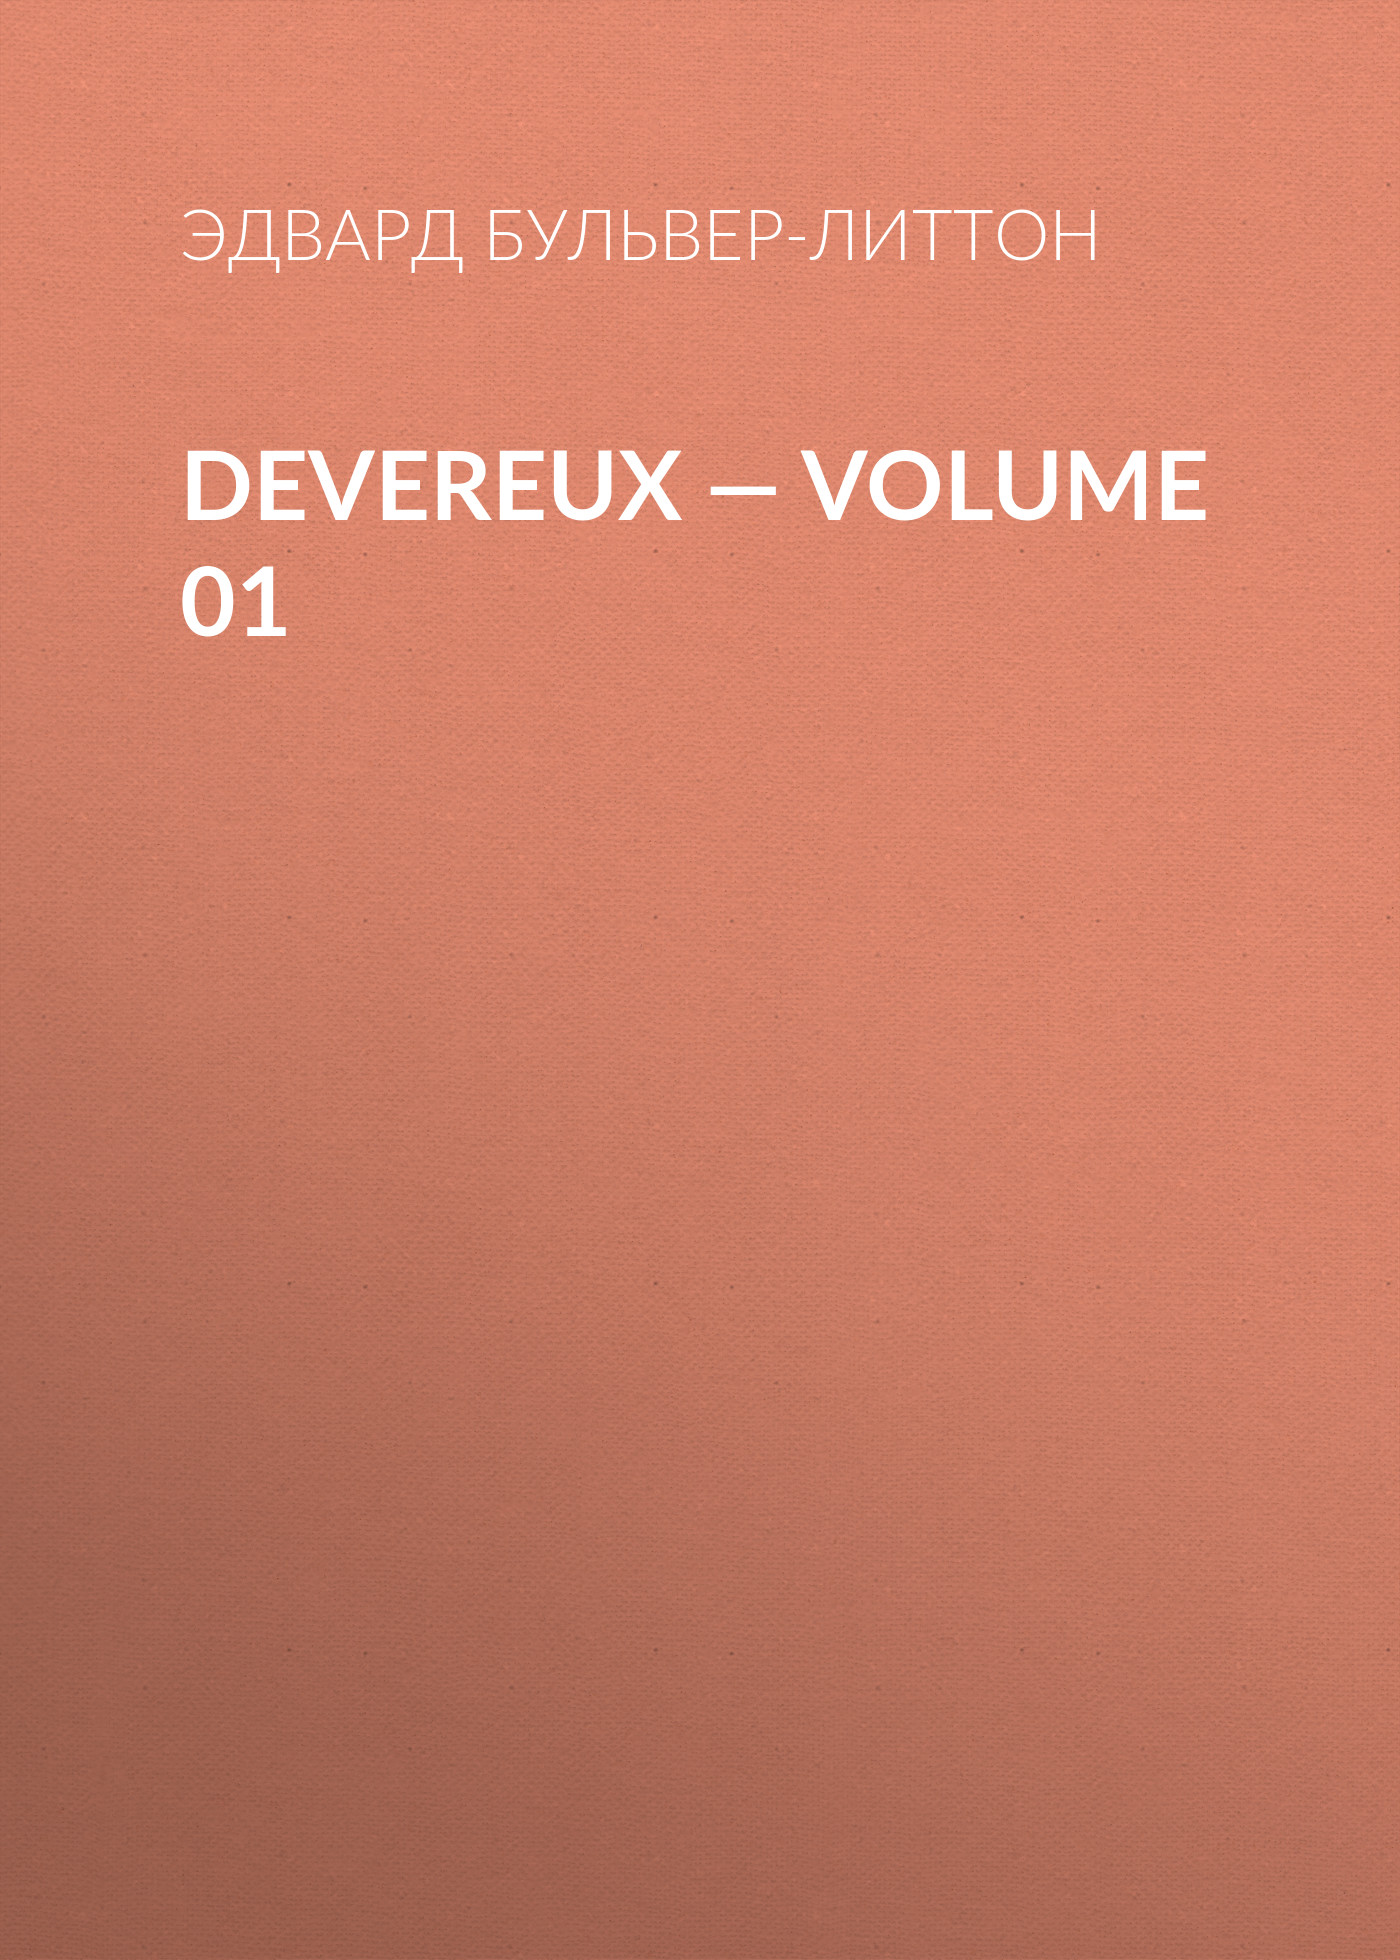 Эдвард Бульвер-Литтон Devereux — Volume 01 эдвард бульвер литтон devereux volume 01